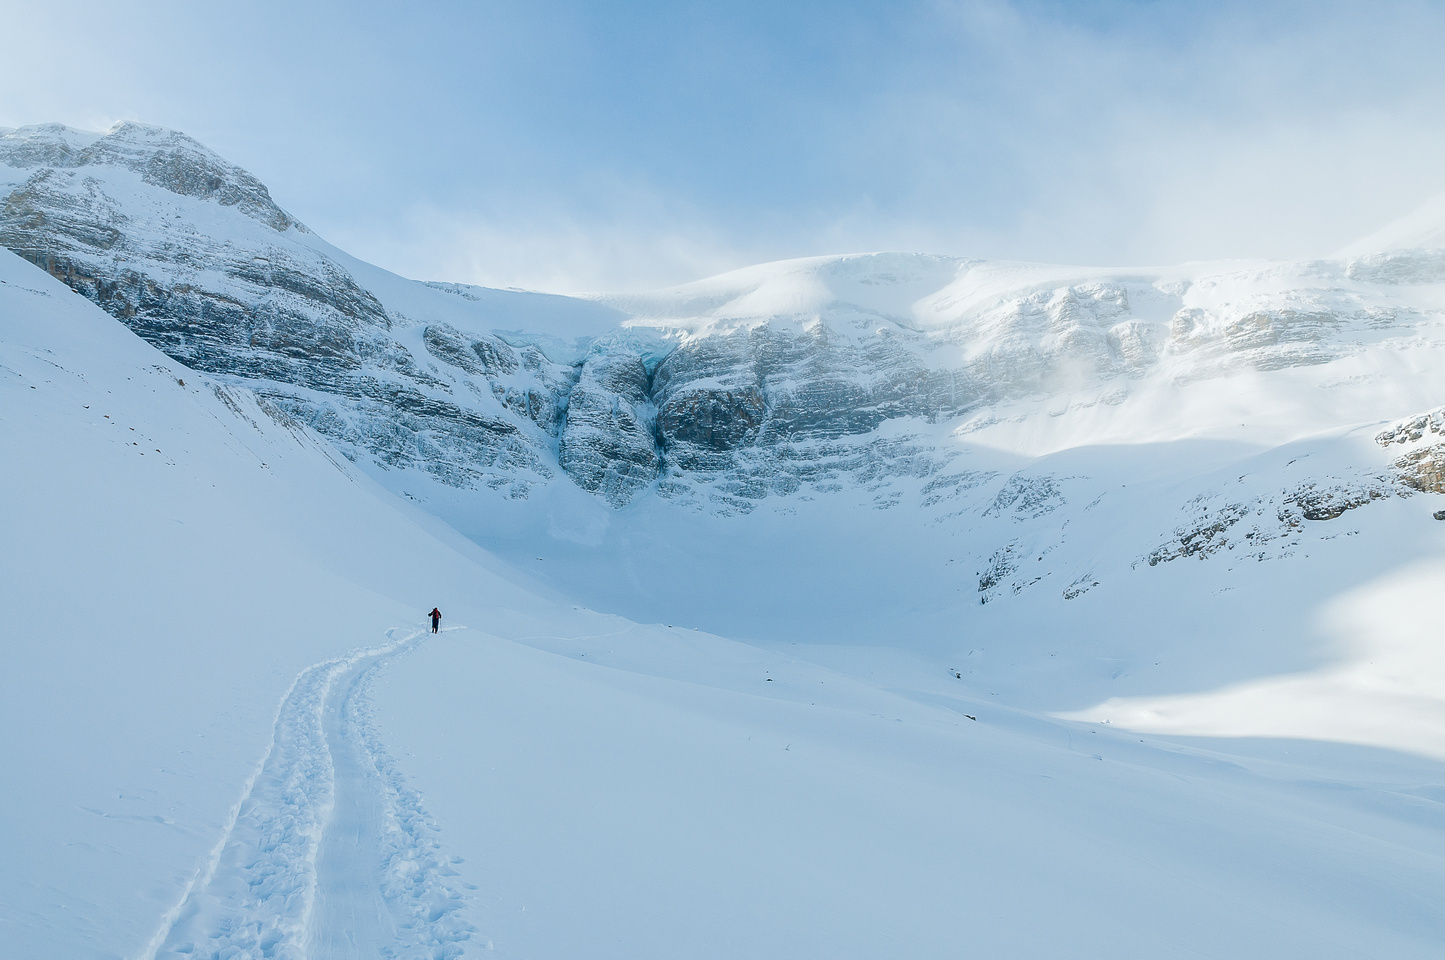 Traversing towards the back bowl under the Bow Hut and Vulture Peak.